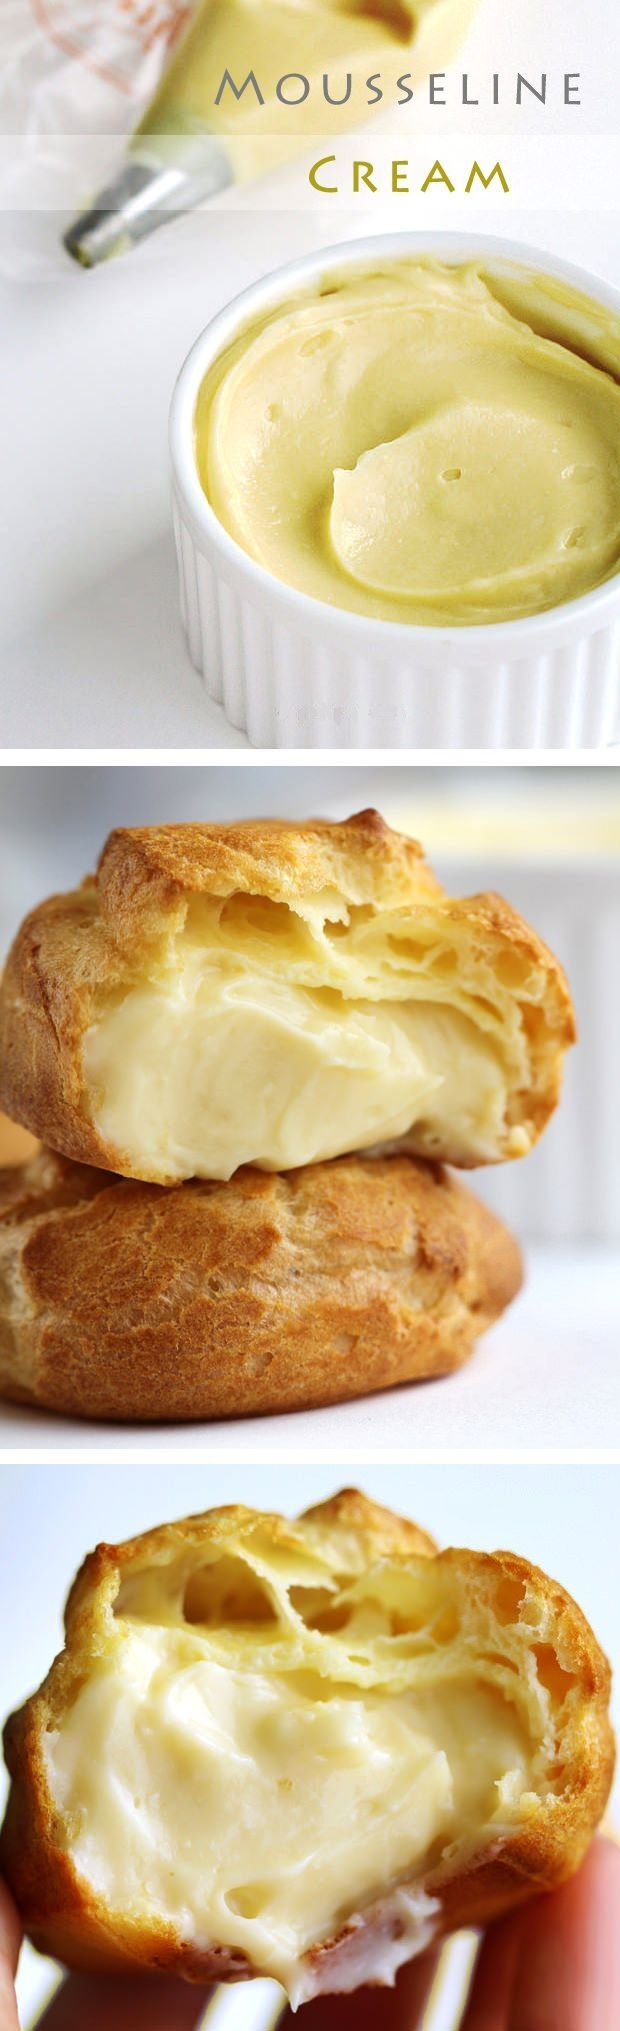 Mousseline cream filled cream puffs are the best! Check out this authentic French easy-to-follow recipe here.